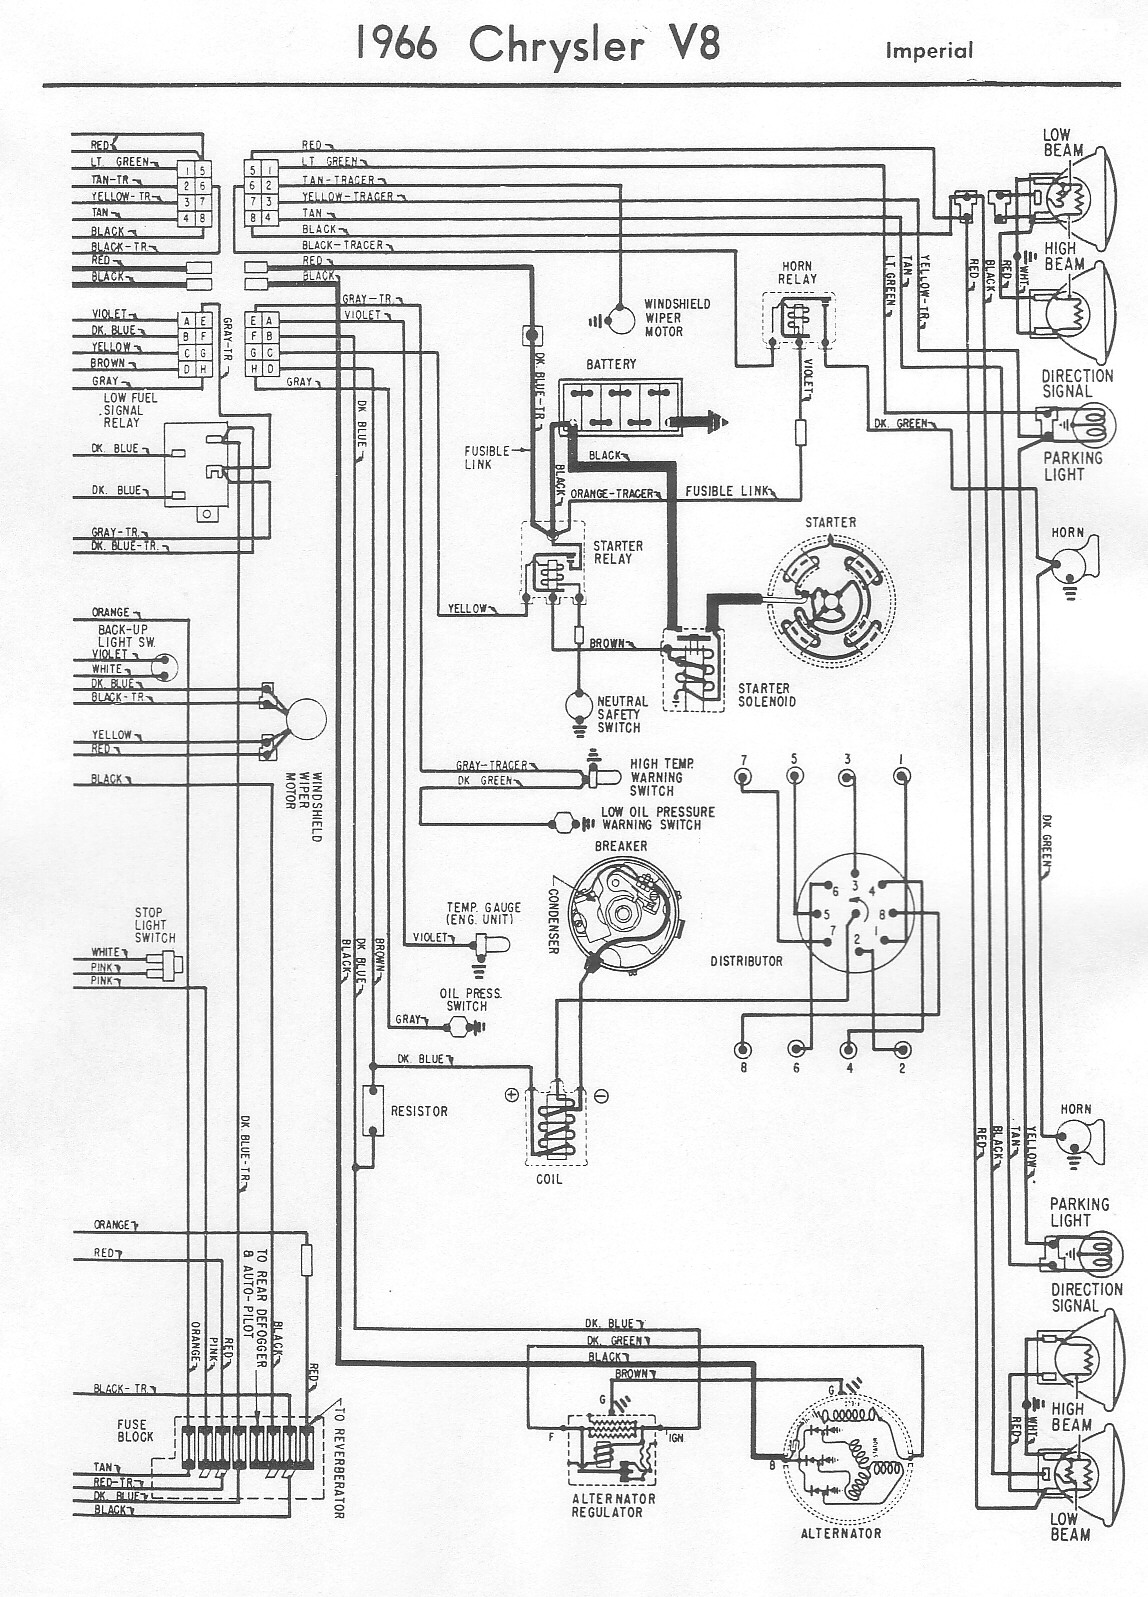 1966 chrysler new yorker wiring diagram